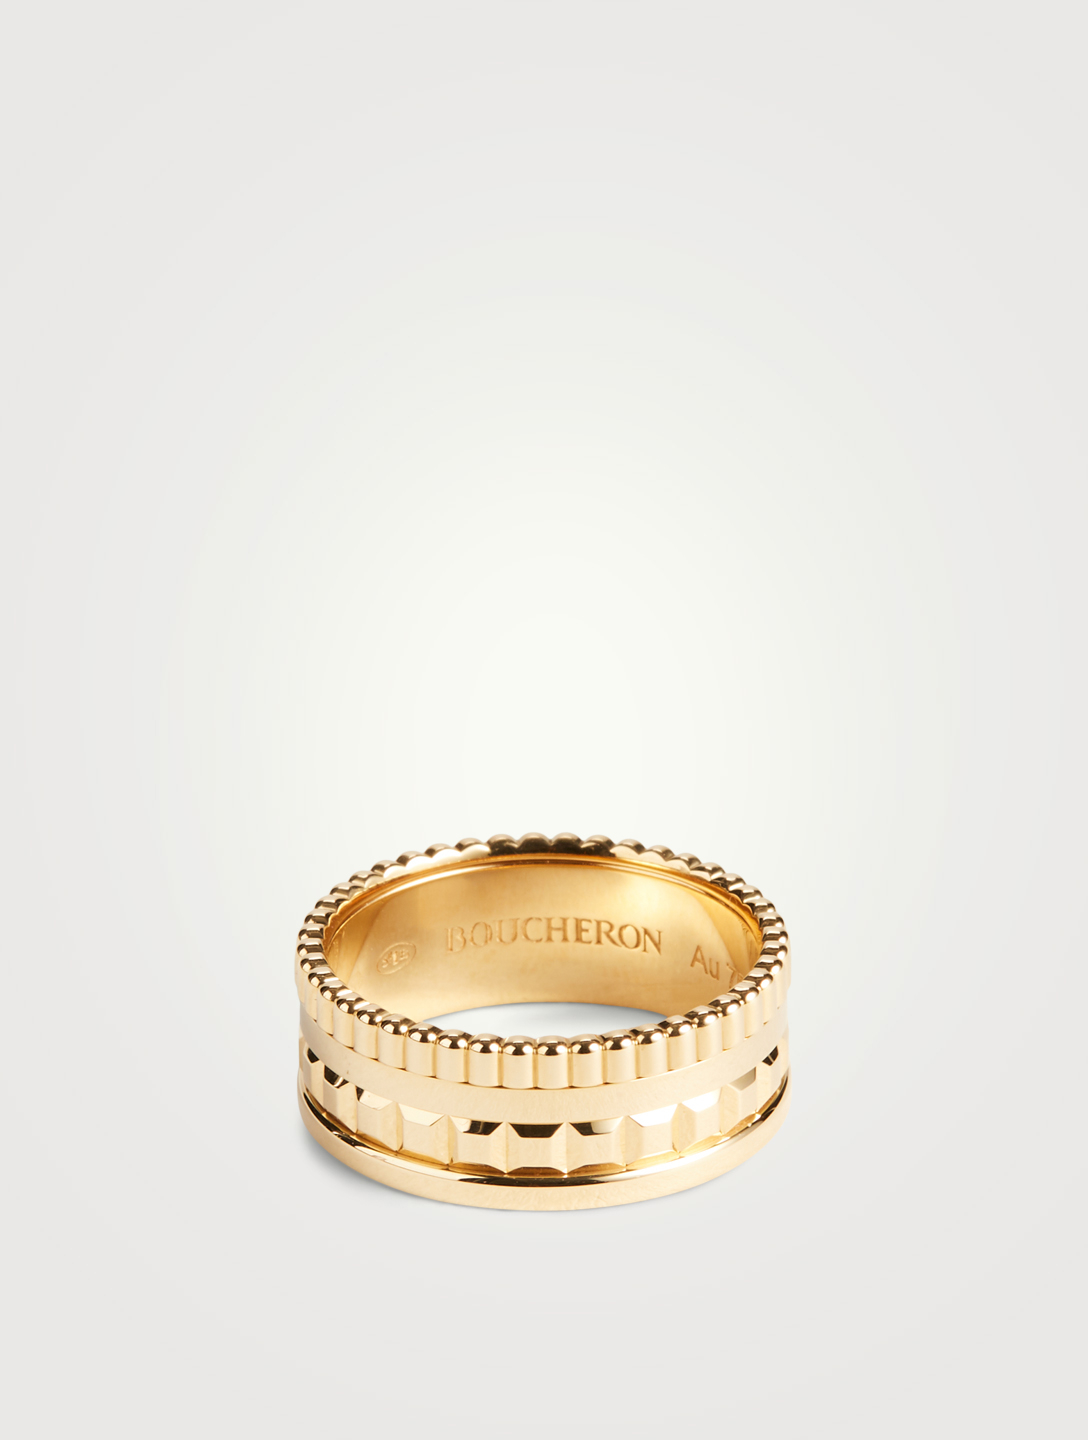 BOUCHERON Small Radiant Edition Quatre Gold Ring Womens Gold